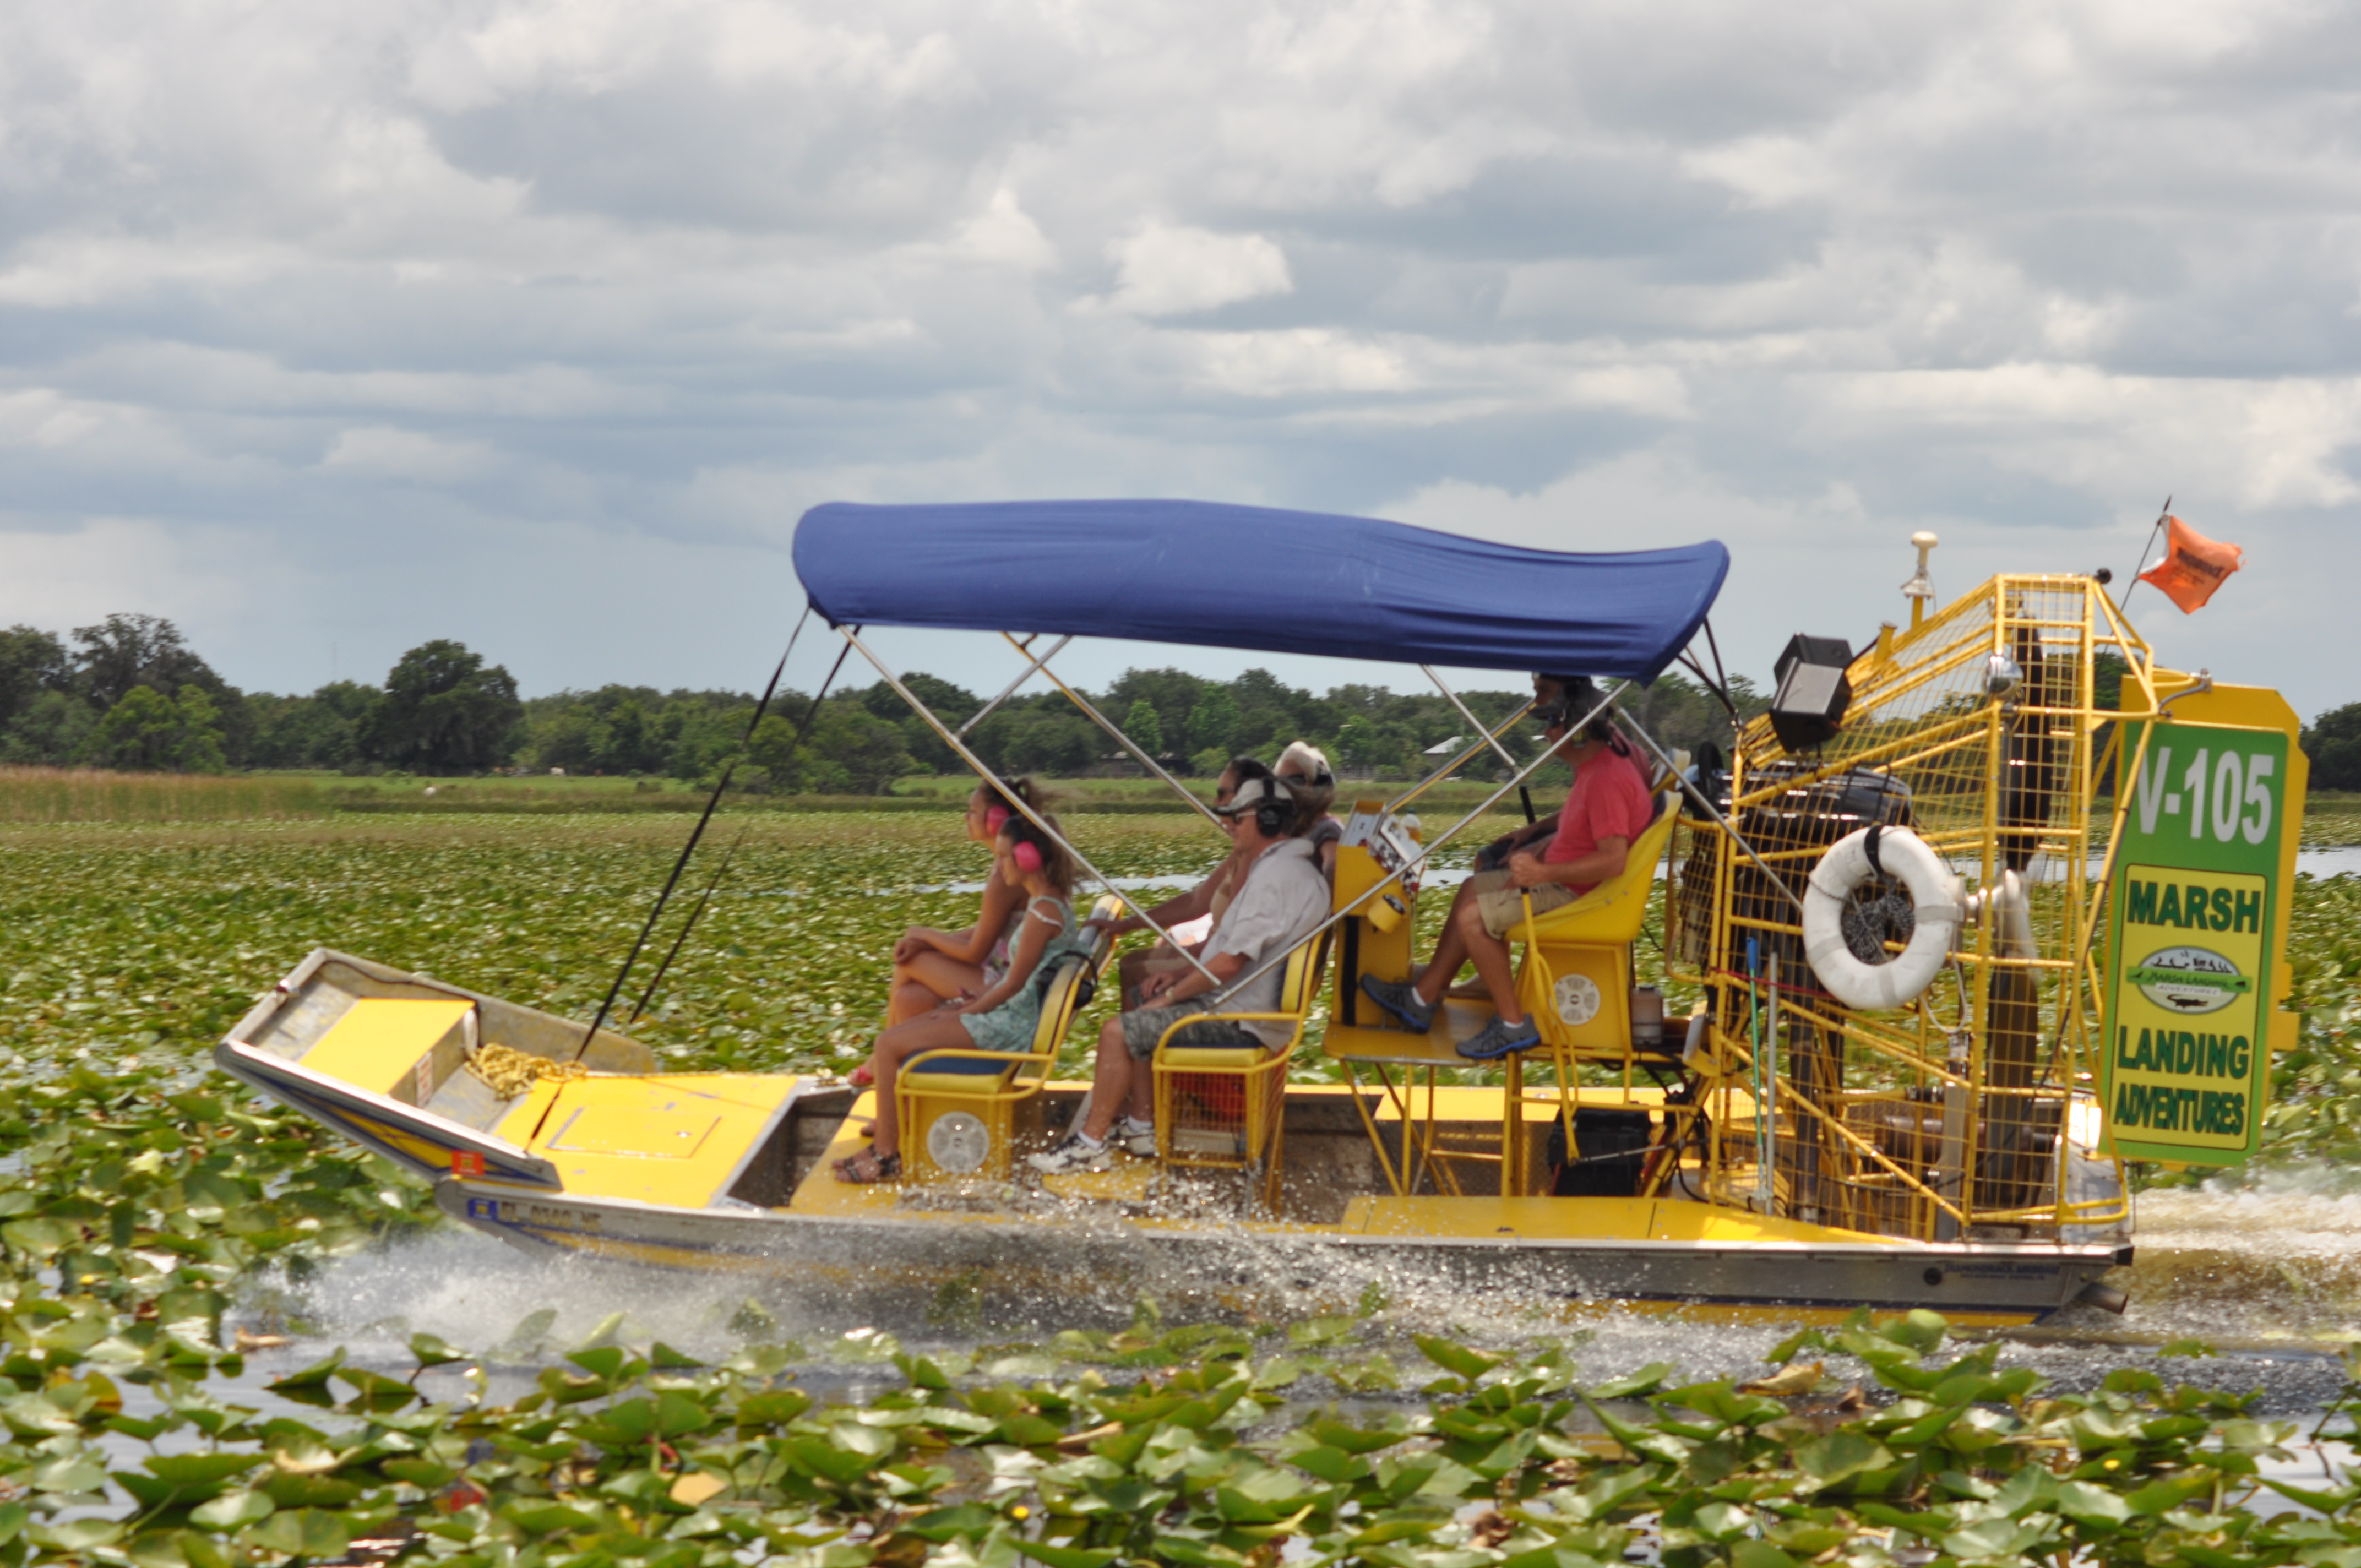 Orlando Airboat Tours Neptune Road